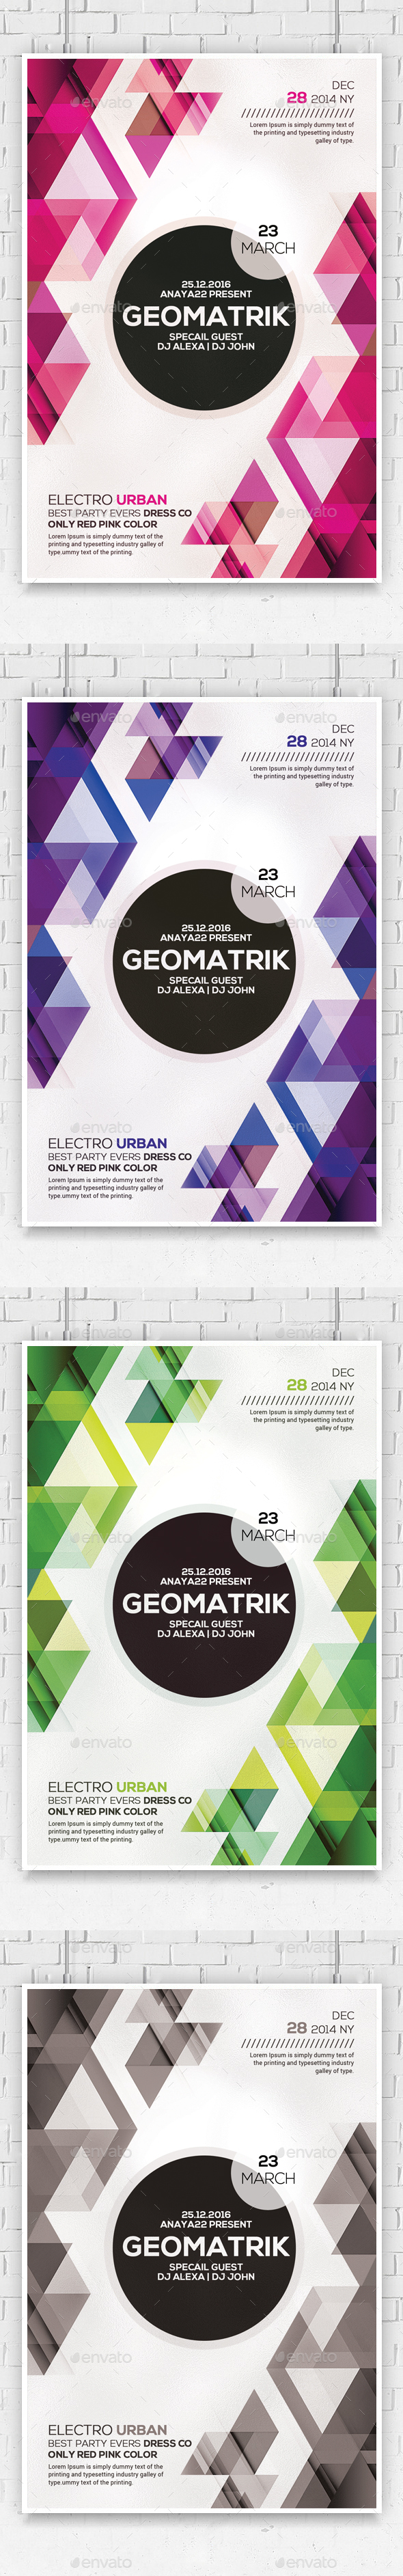 Minimal Geometric Flyer Psd Template  Psd Templates Flyer